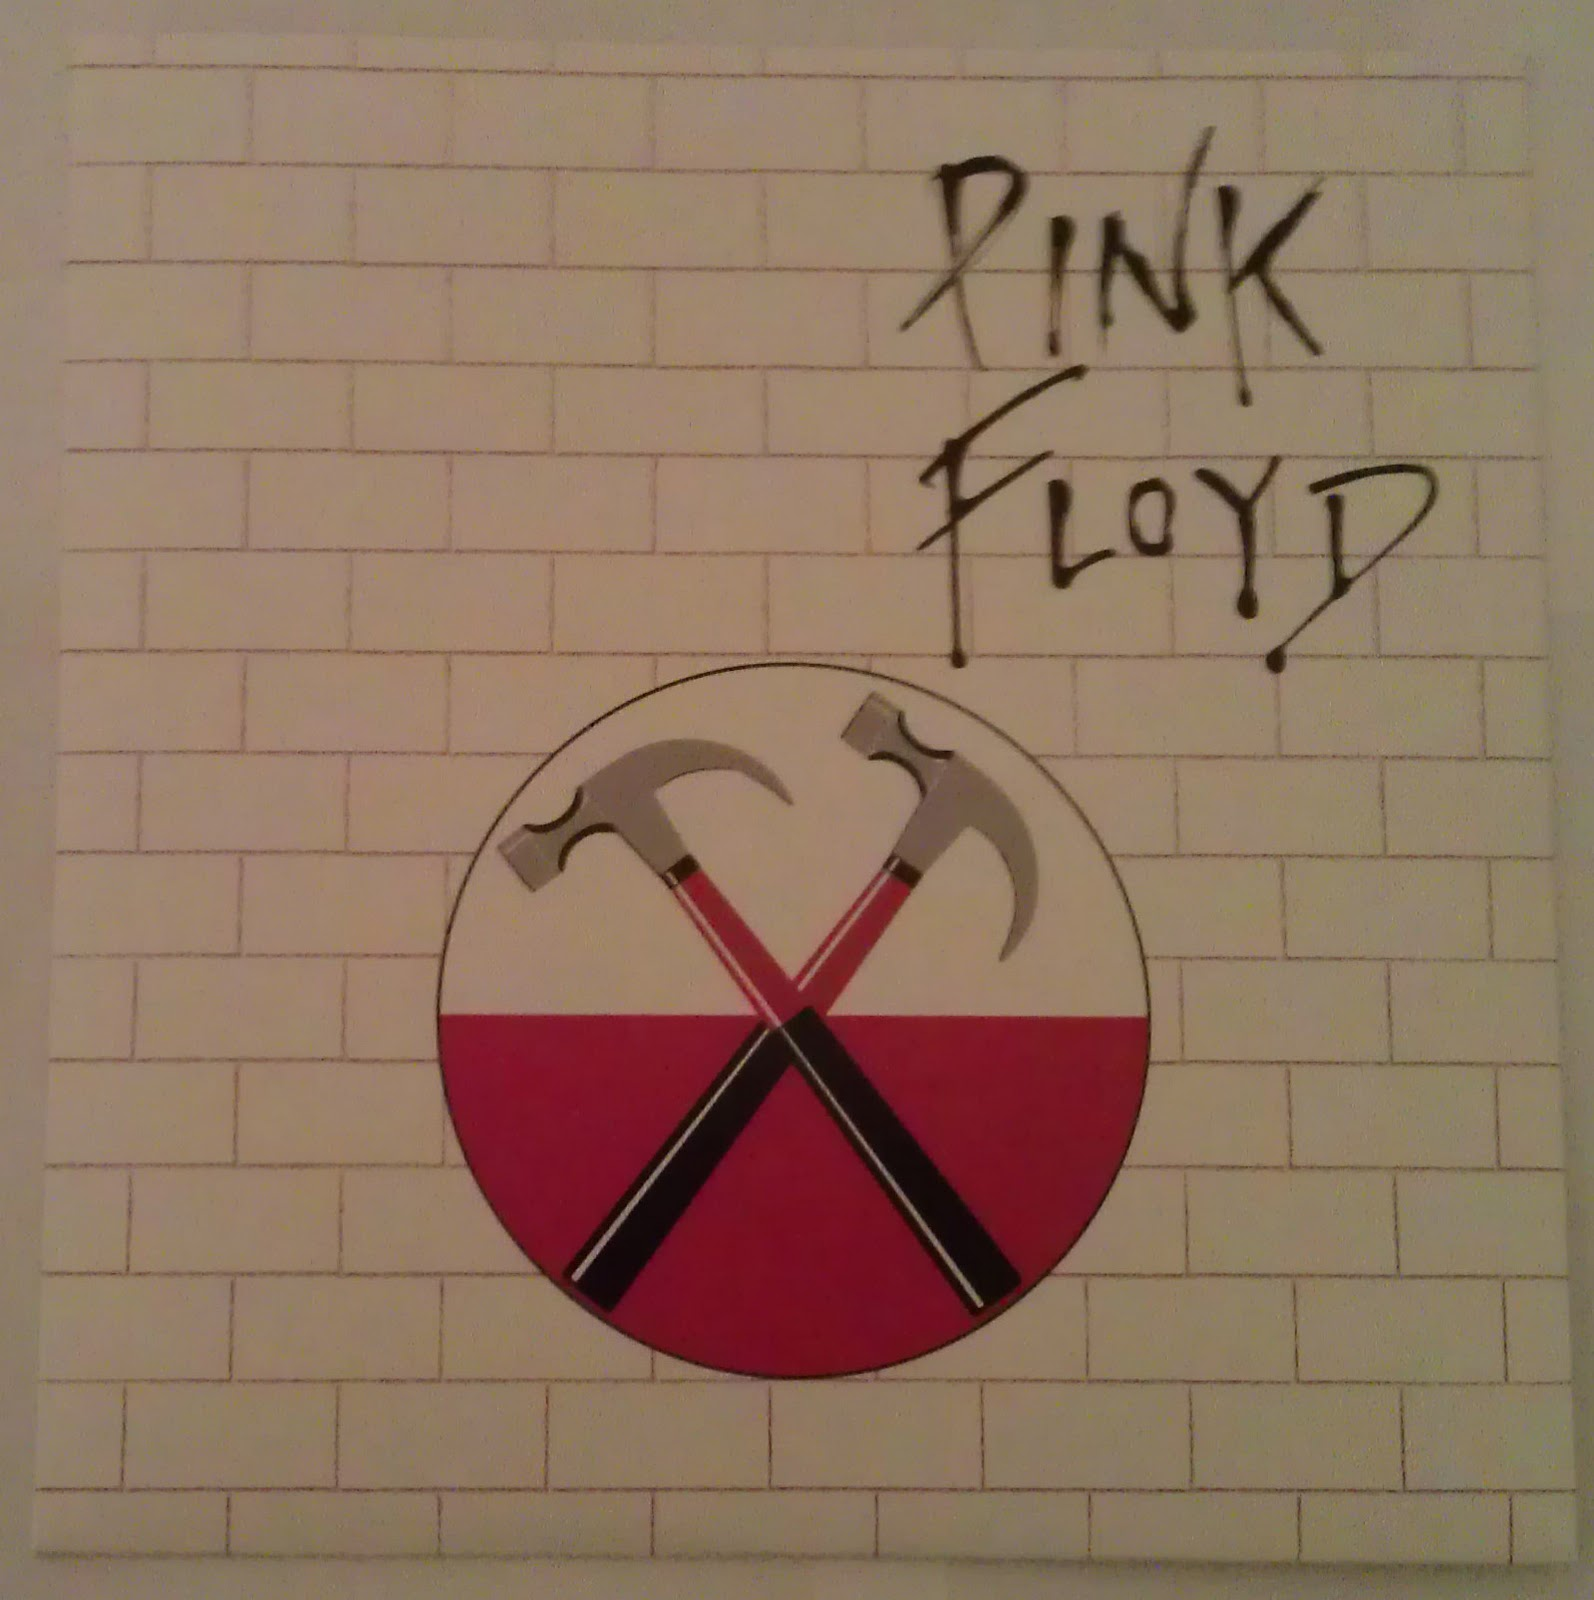 pink floyd research paper New york, may 6, 2016 /prnewswire/ -- for the first time in over two decades,  pink floyd records will begin the reintroduction of the pink.